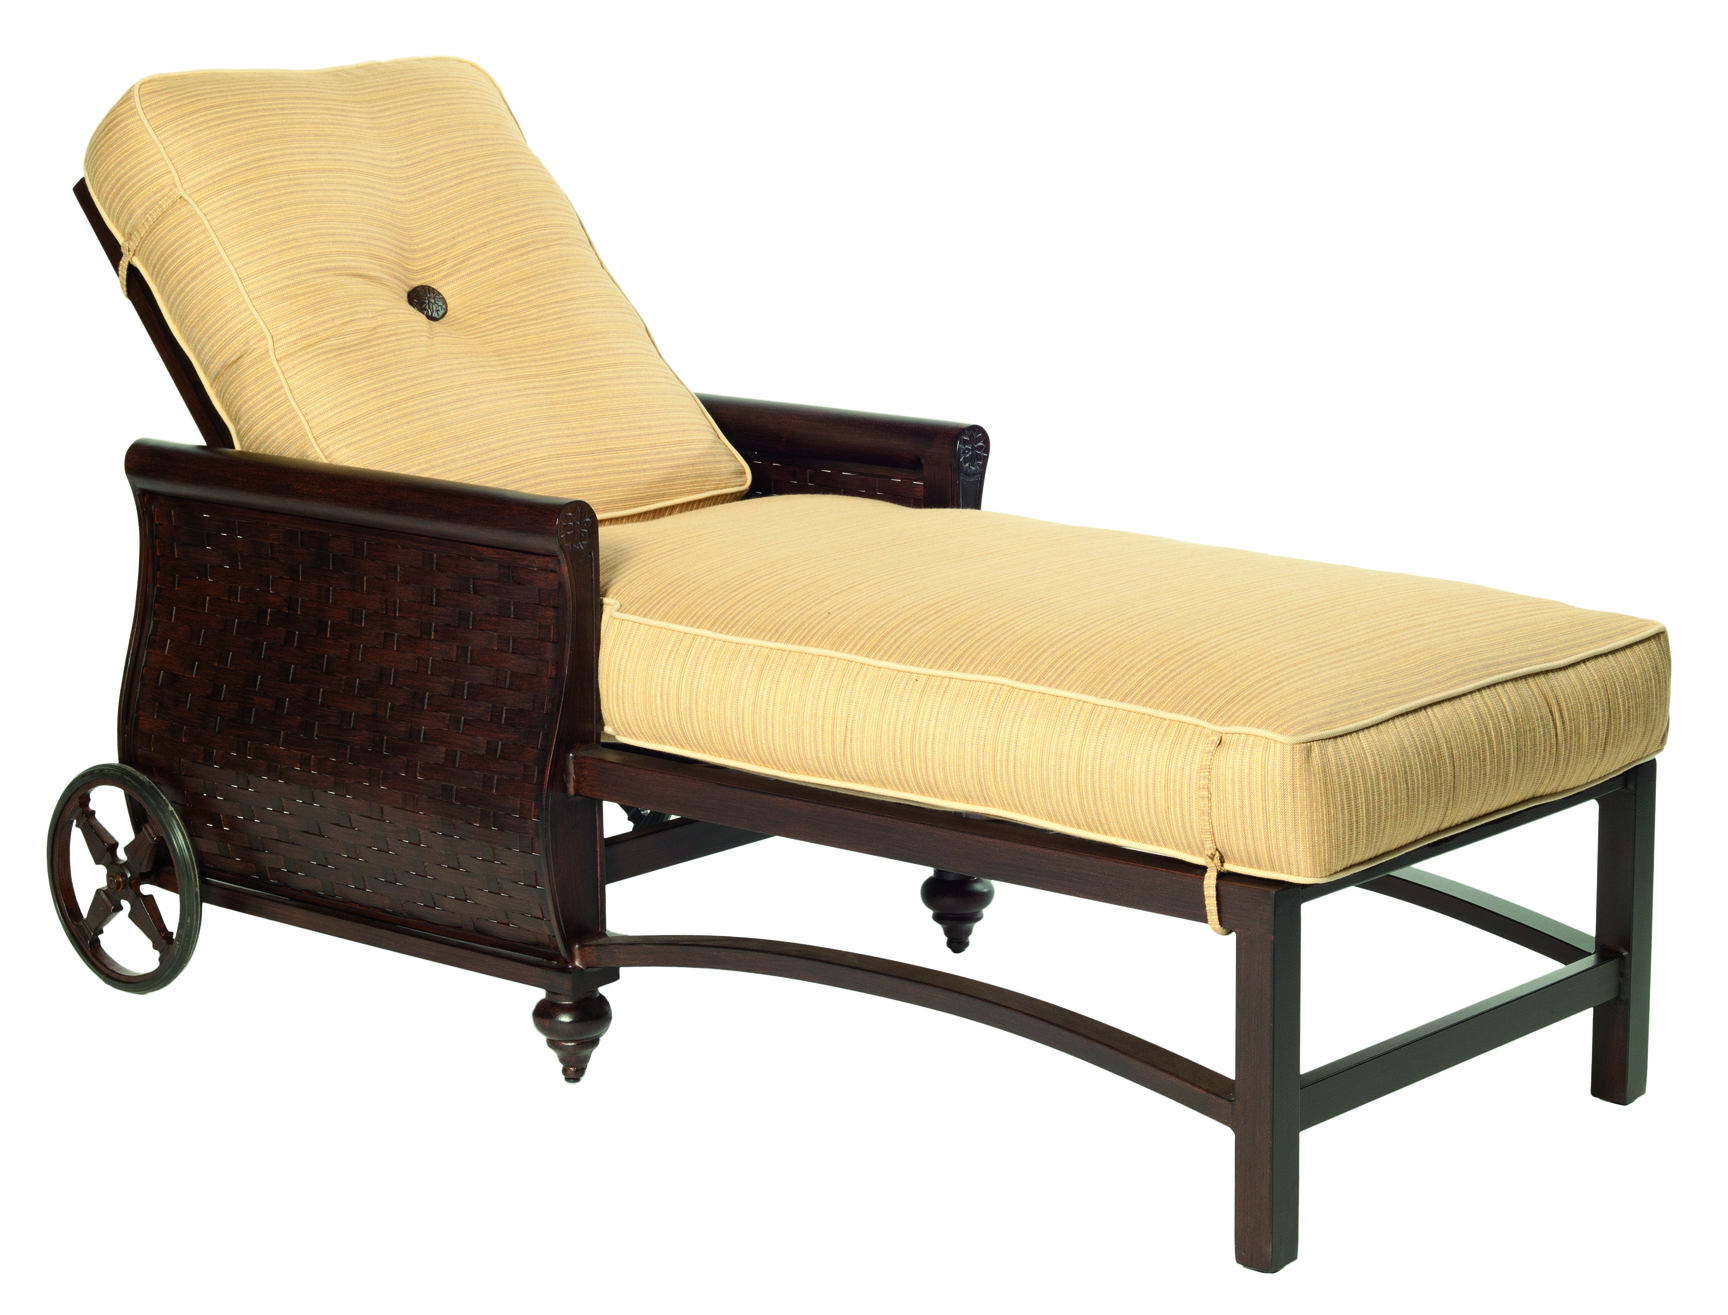 French Quarter Cushion Adjustable Chaise Lounge W Wheels